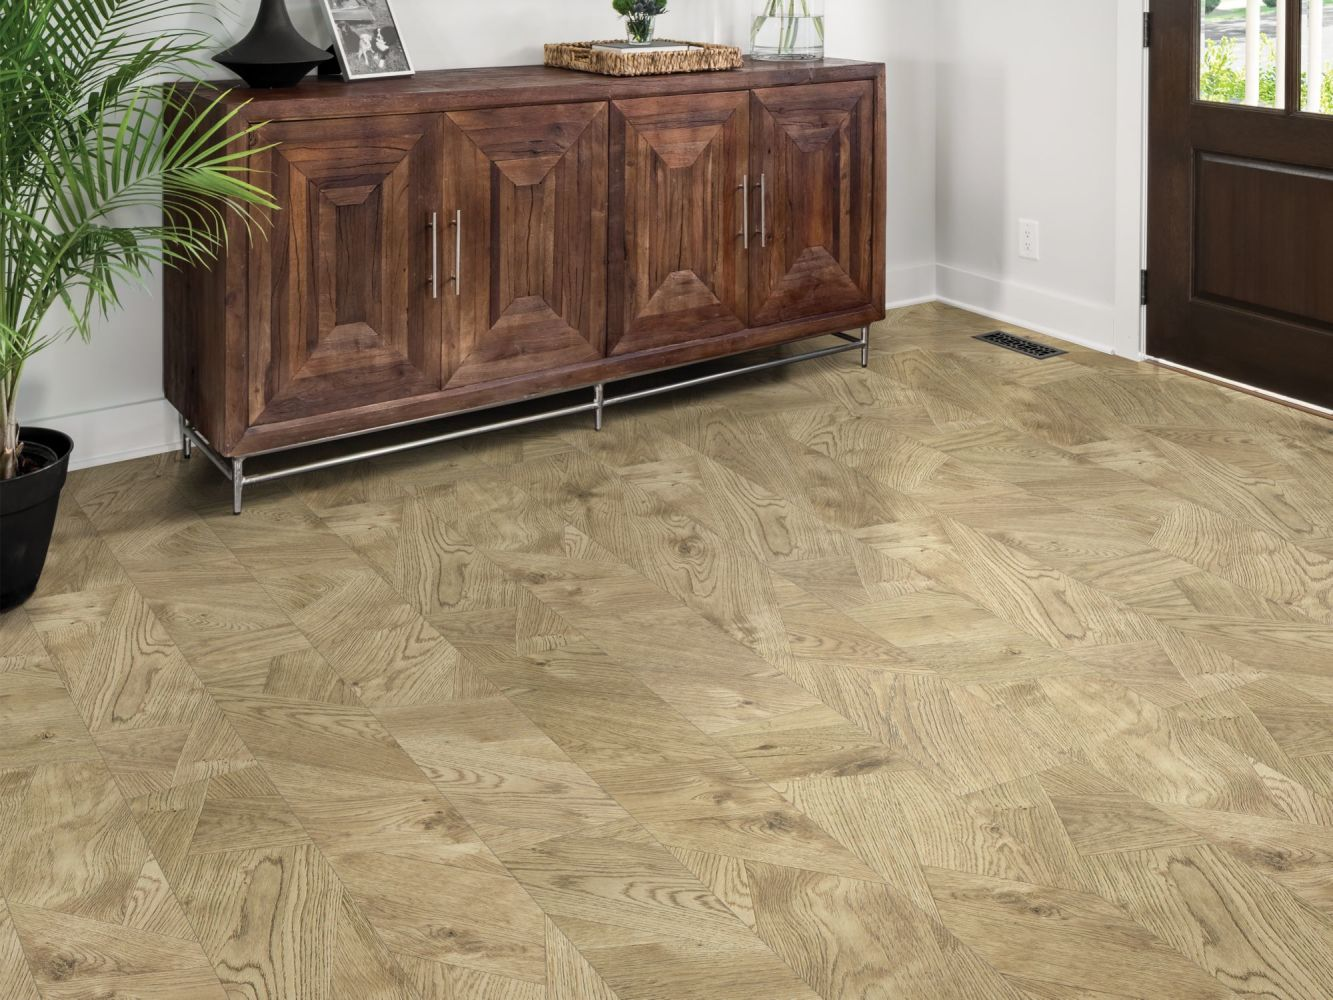 Shaw Floors Resilient Residential Tenacious Hd+ Milled Bazaar Bronze 07086_3010V